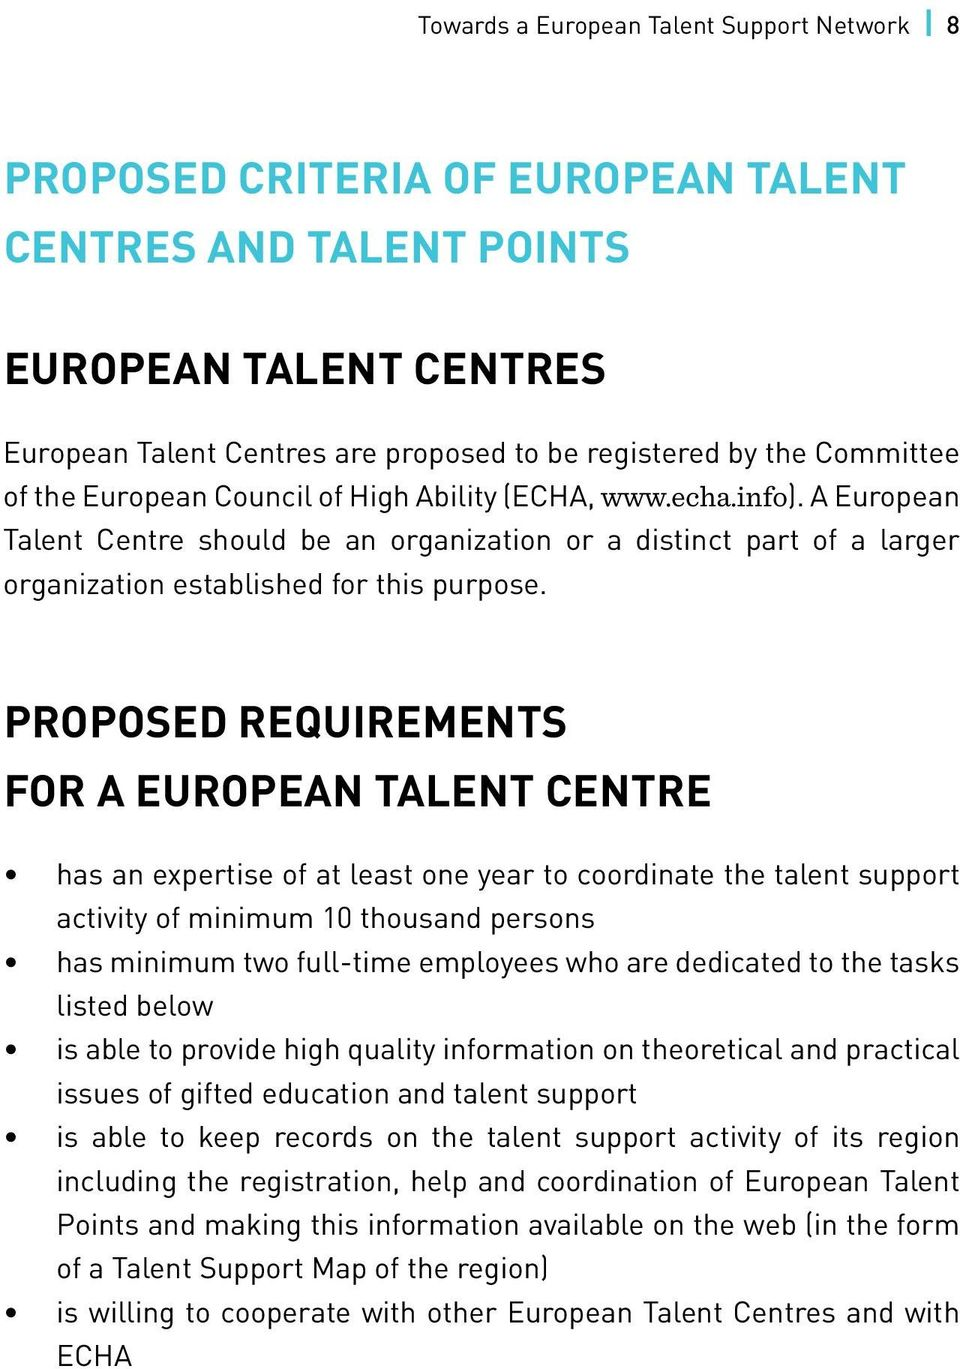 Proposed requirements for a European Talent Centre has an expertise of at least one year to coordinate the talent support activity of minimum 10 thousand persons has minimum two full-time employees